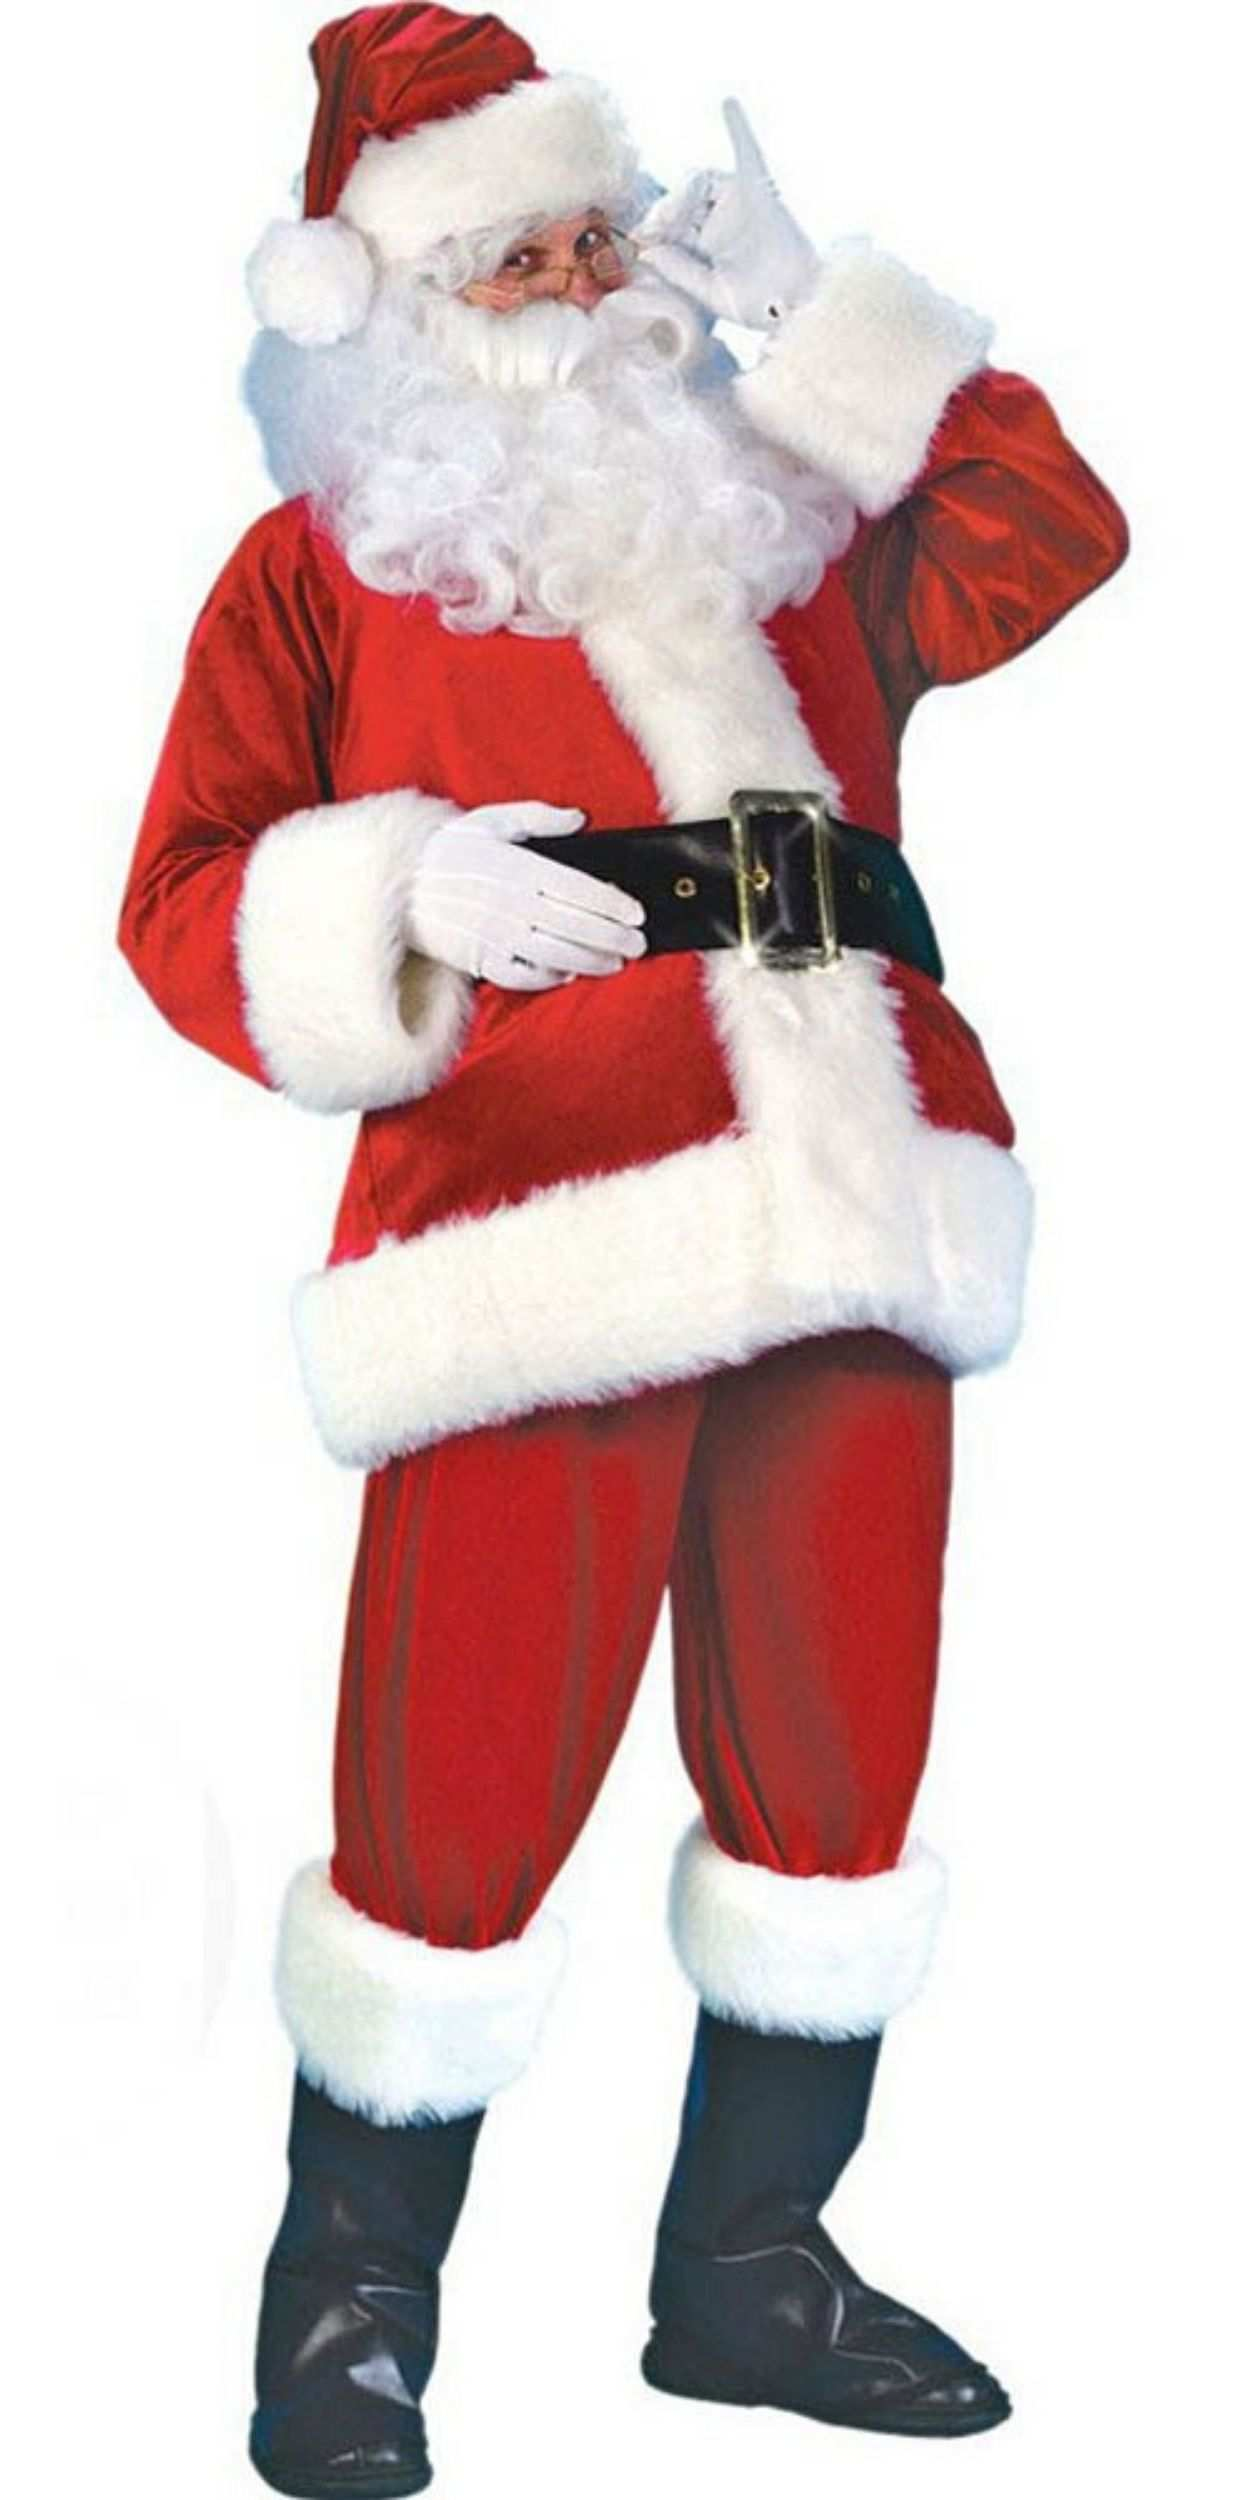 Man in Santa Party Costume